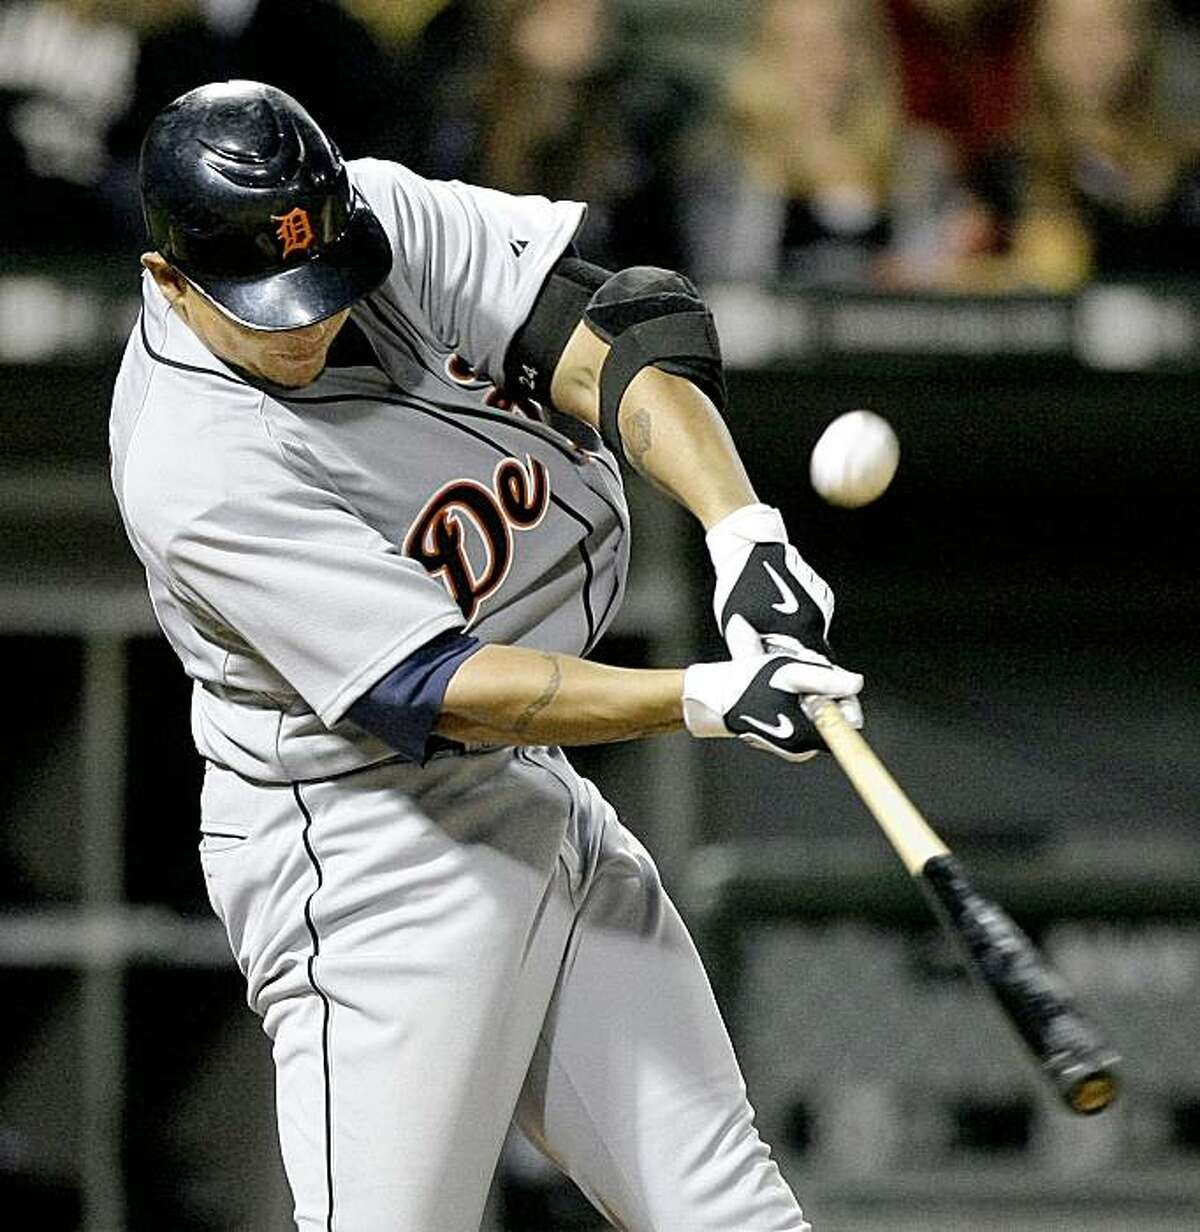 Detroit Tigers' Miguel Cabrera singles off Chicago White Sox relief pitcher Scott Linebrink scoring Clete Thomas during the eighth inning of a baseball game Saturday, Sept. 26, 2009 in Chicago. (AP Photo/Charles Rex Arbogast)